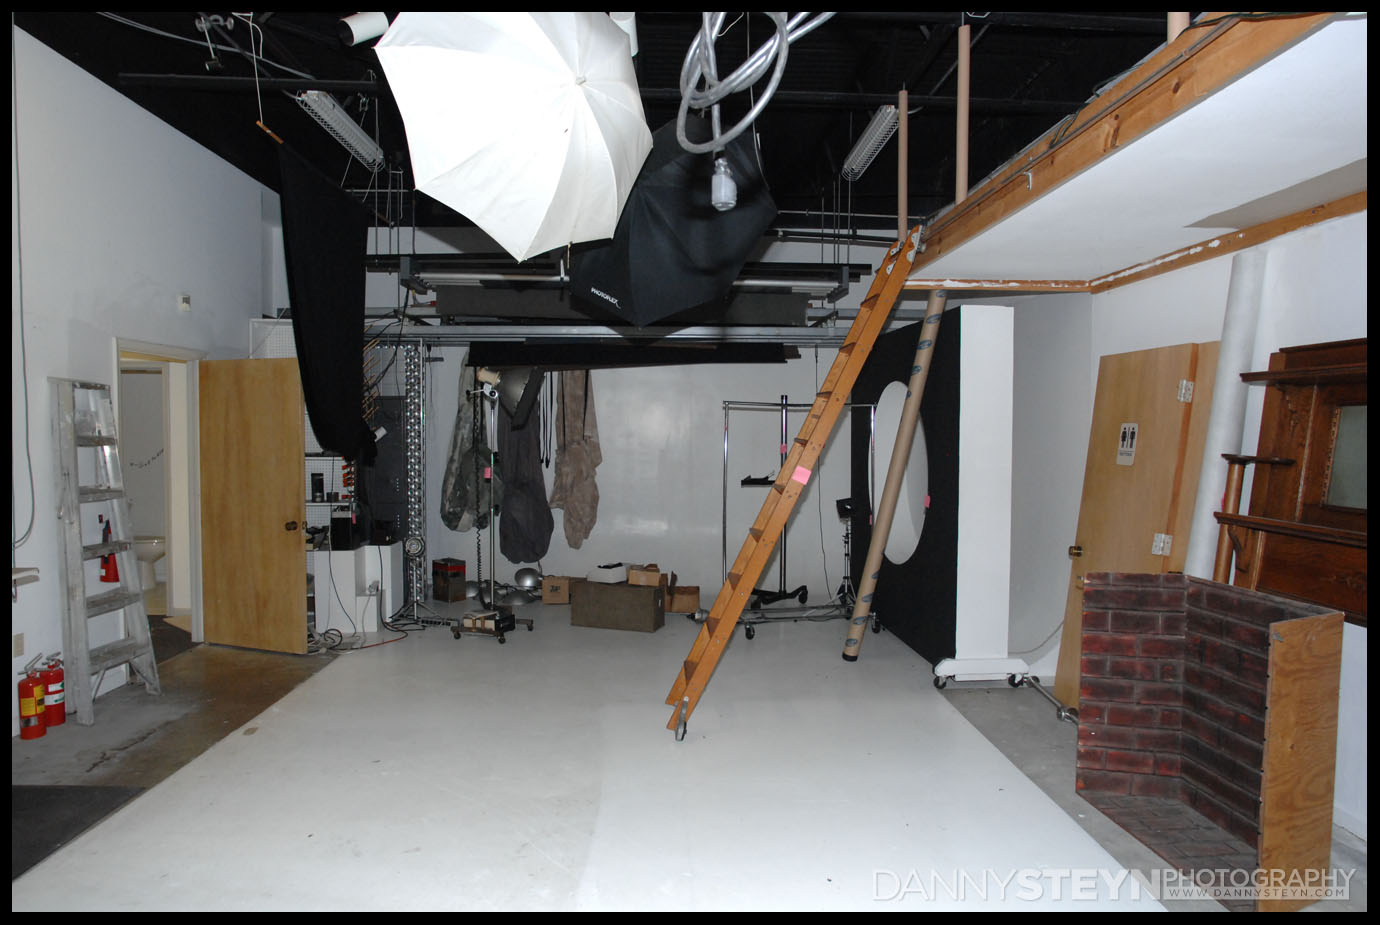 Getting a closer look - New photography studio construction project